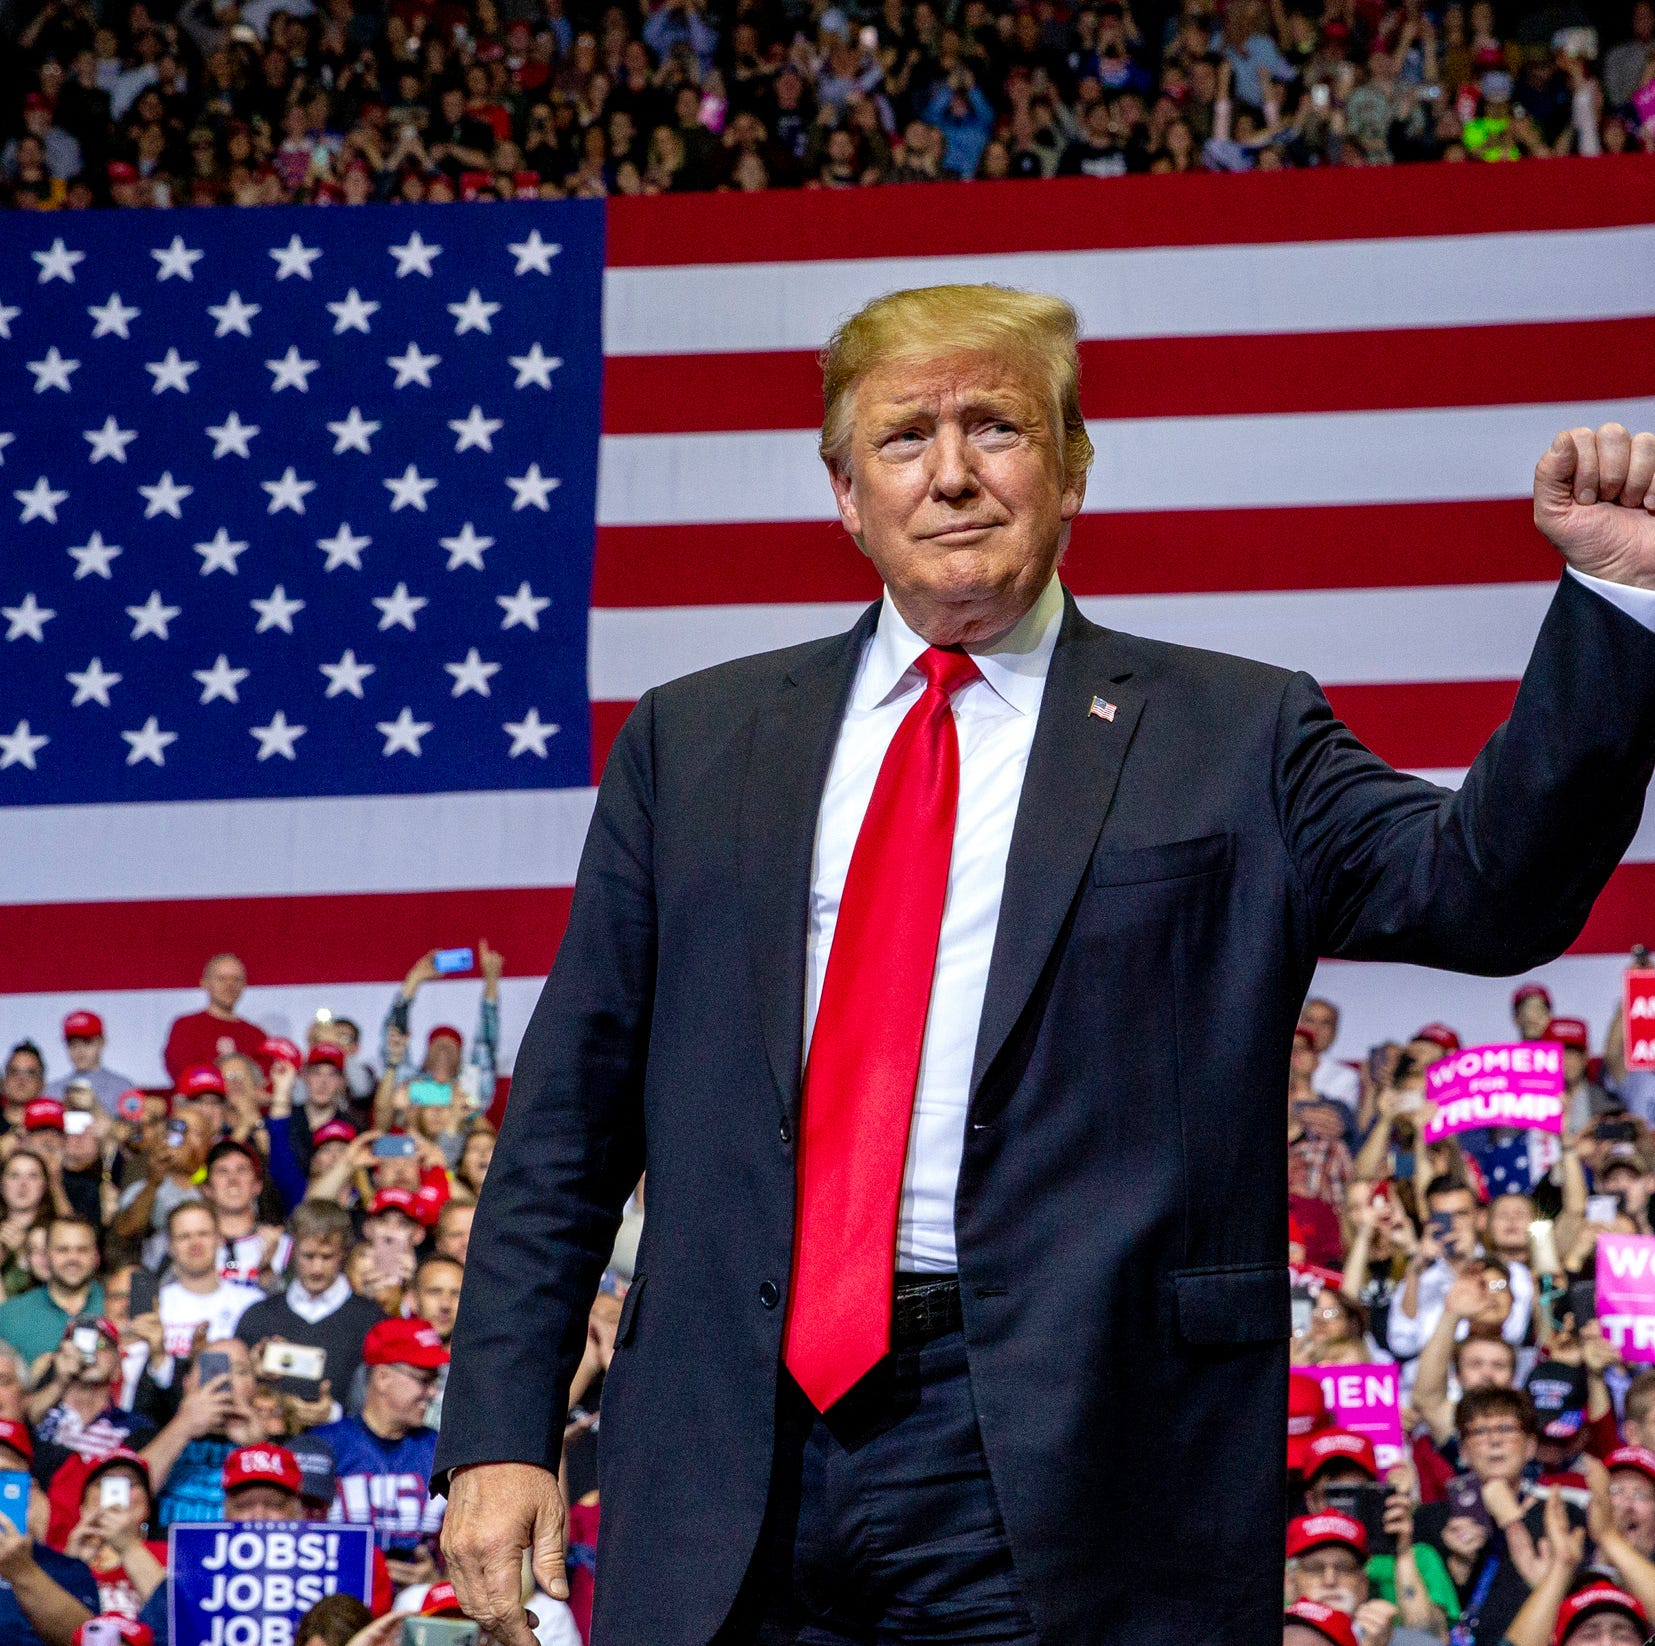 President Donald Trump gestures at a campaign rally at Van Andel Arena in Grand Rapids, Michigan, on Thursday, March 28, 2019.